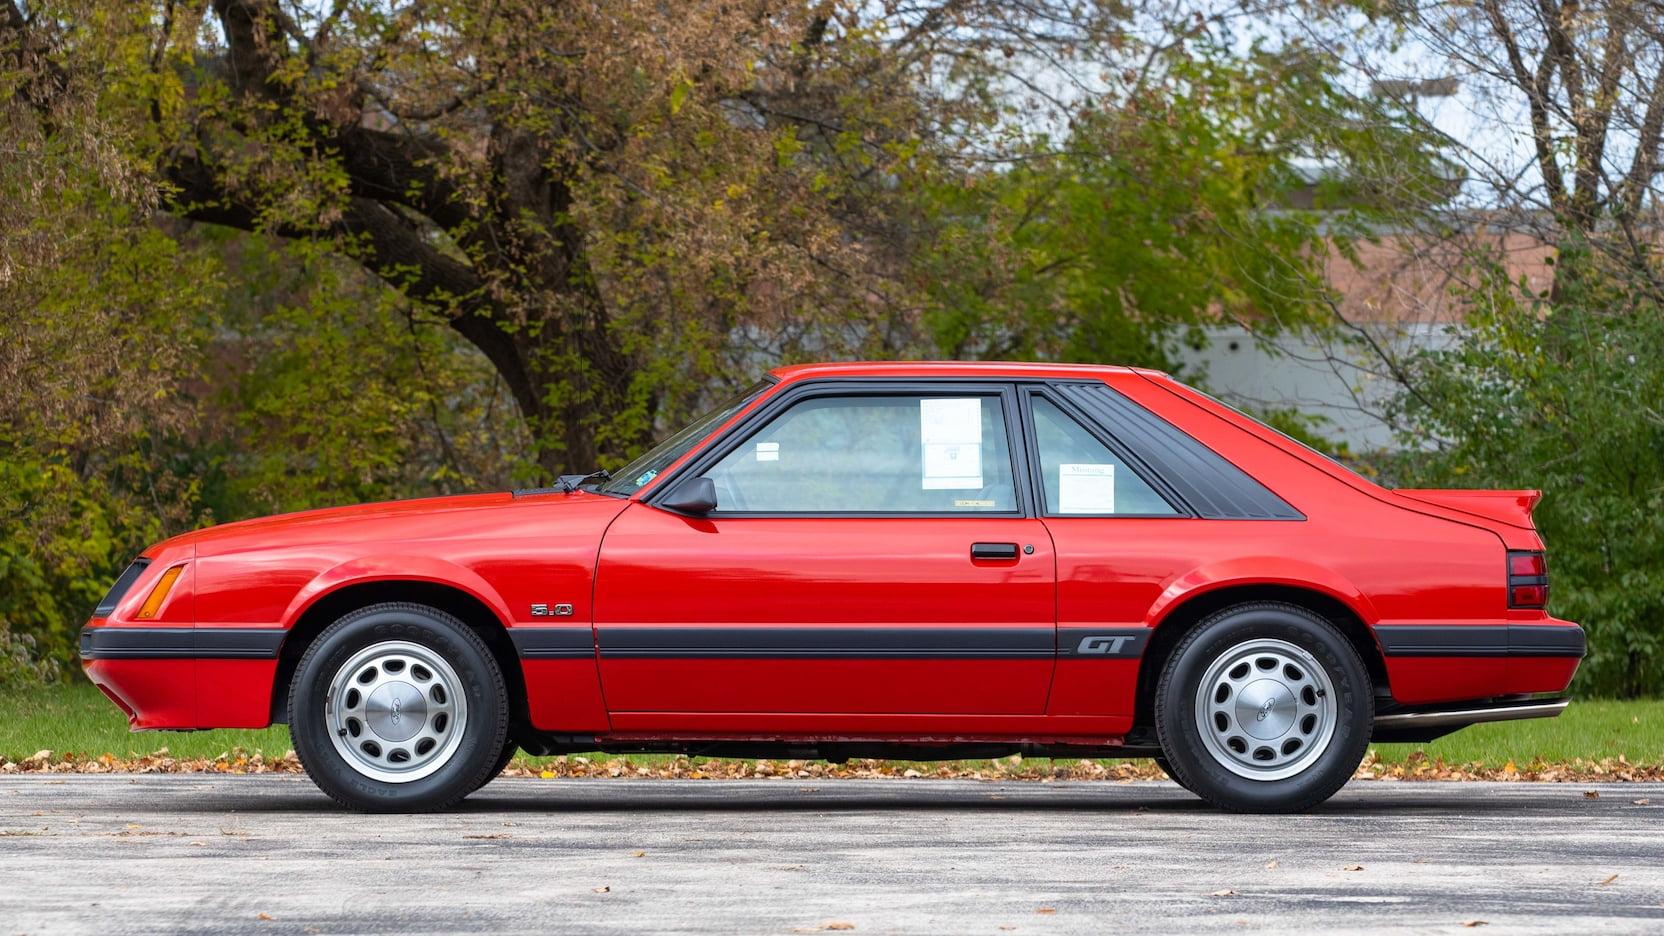 1985 Mustang Engine Information Specs 140 Lima Inline 4 2 3 L